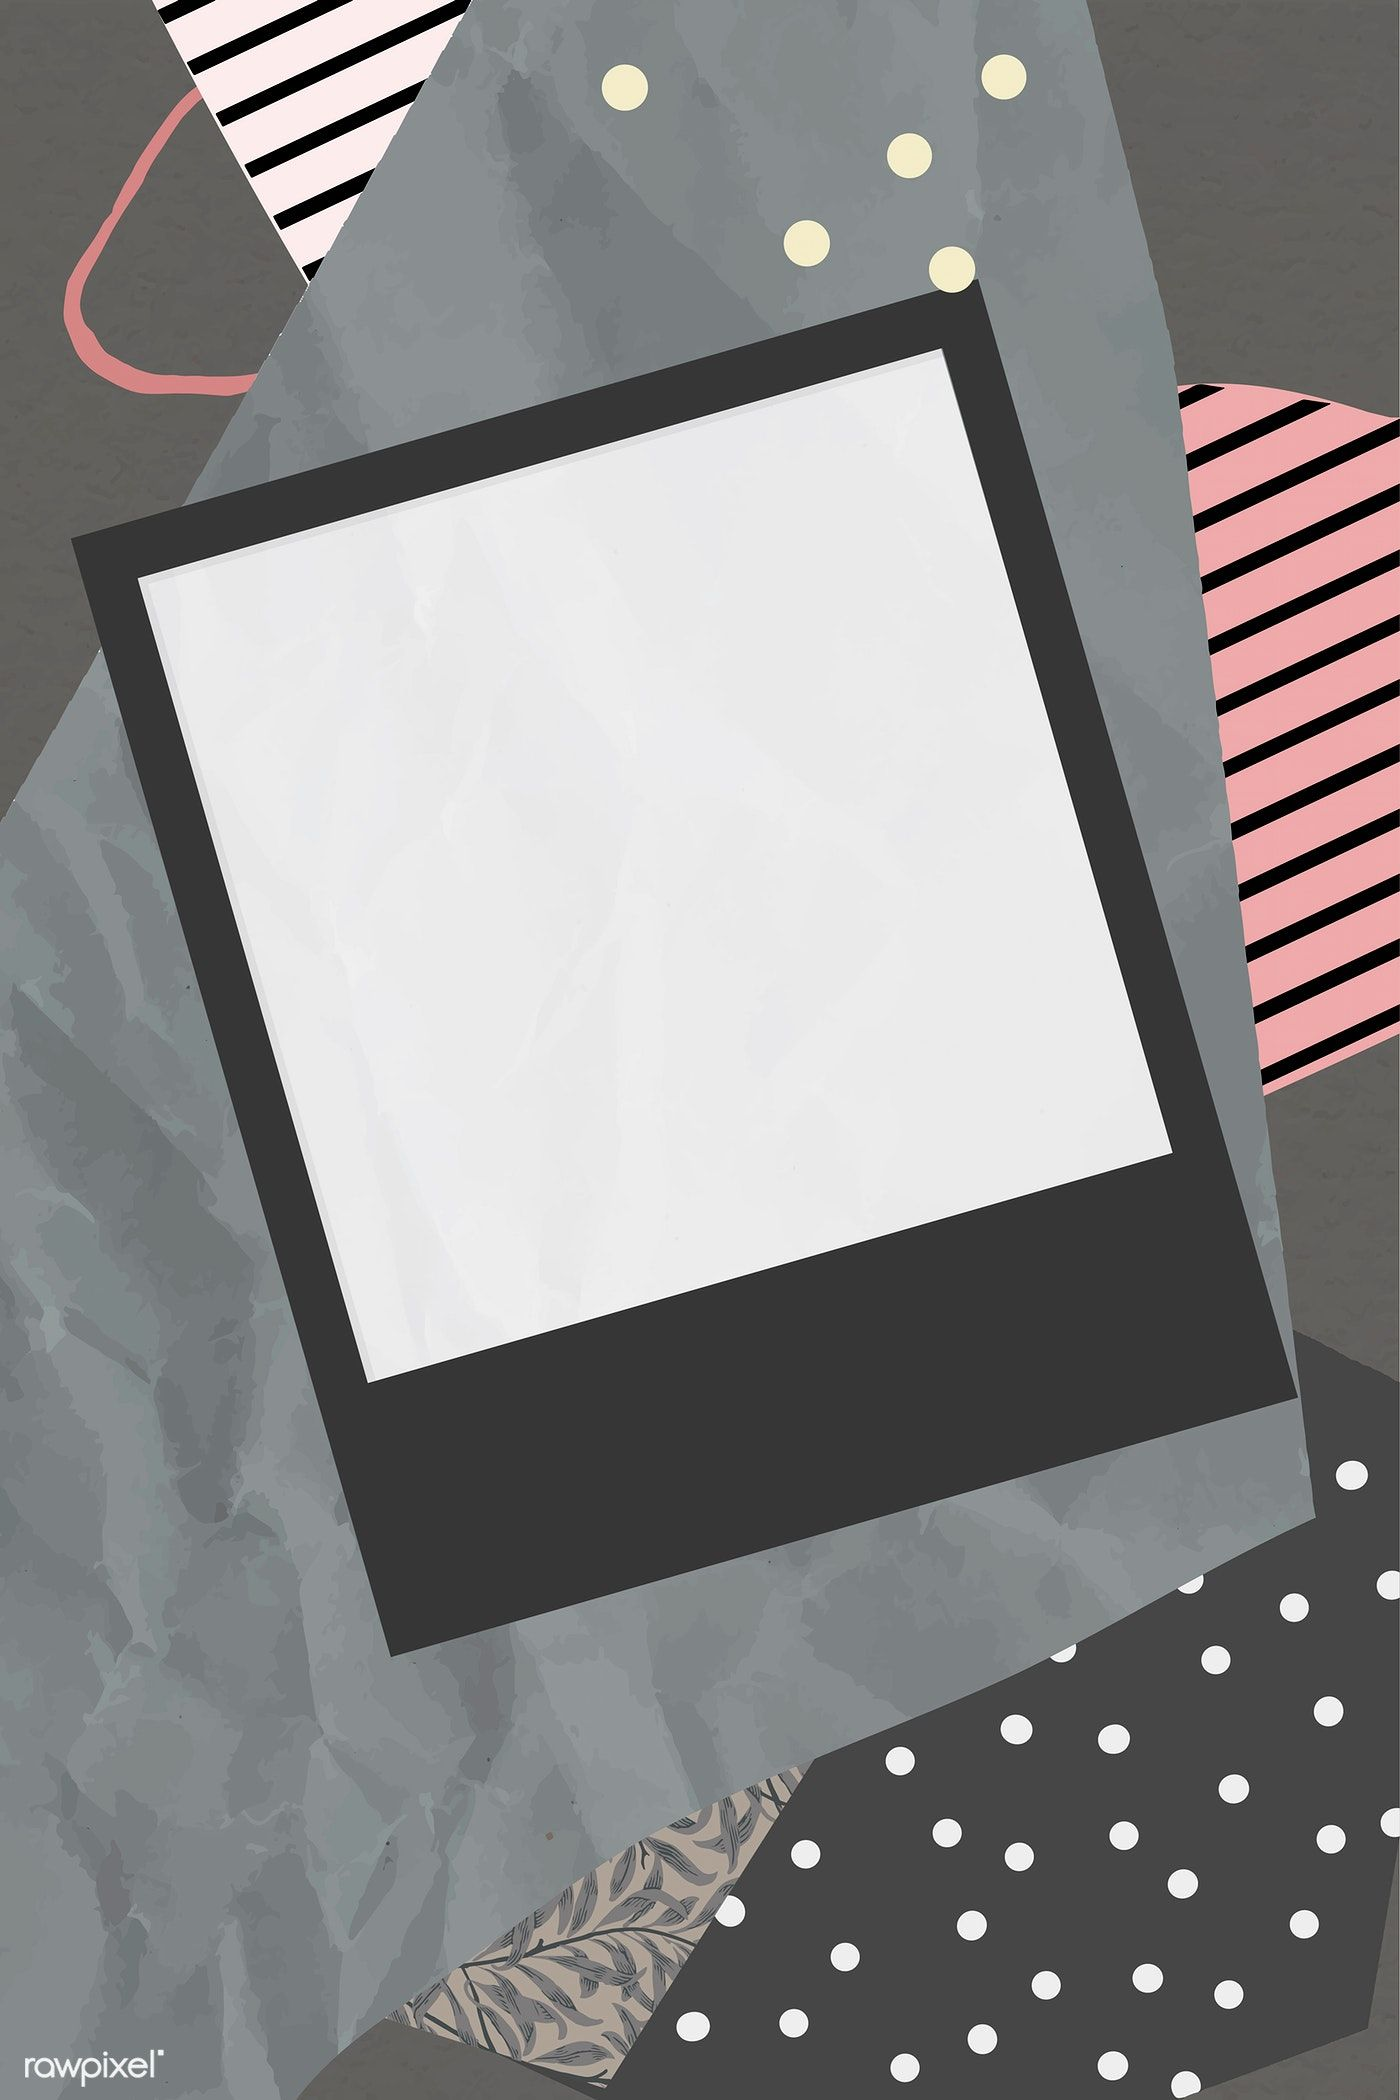 Download premium vector of Blank photo frame on scrapped